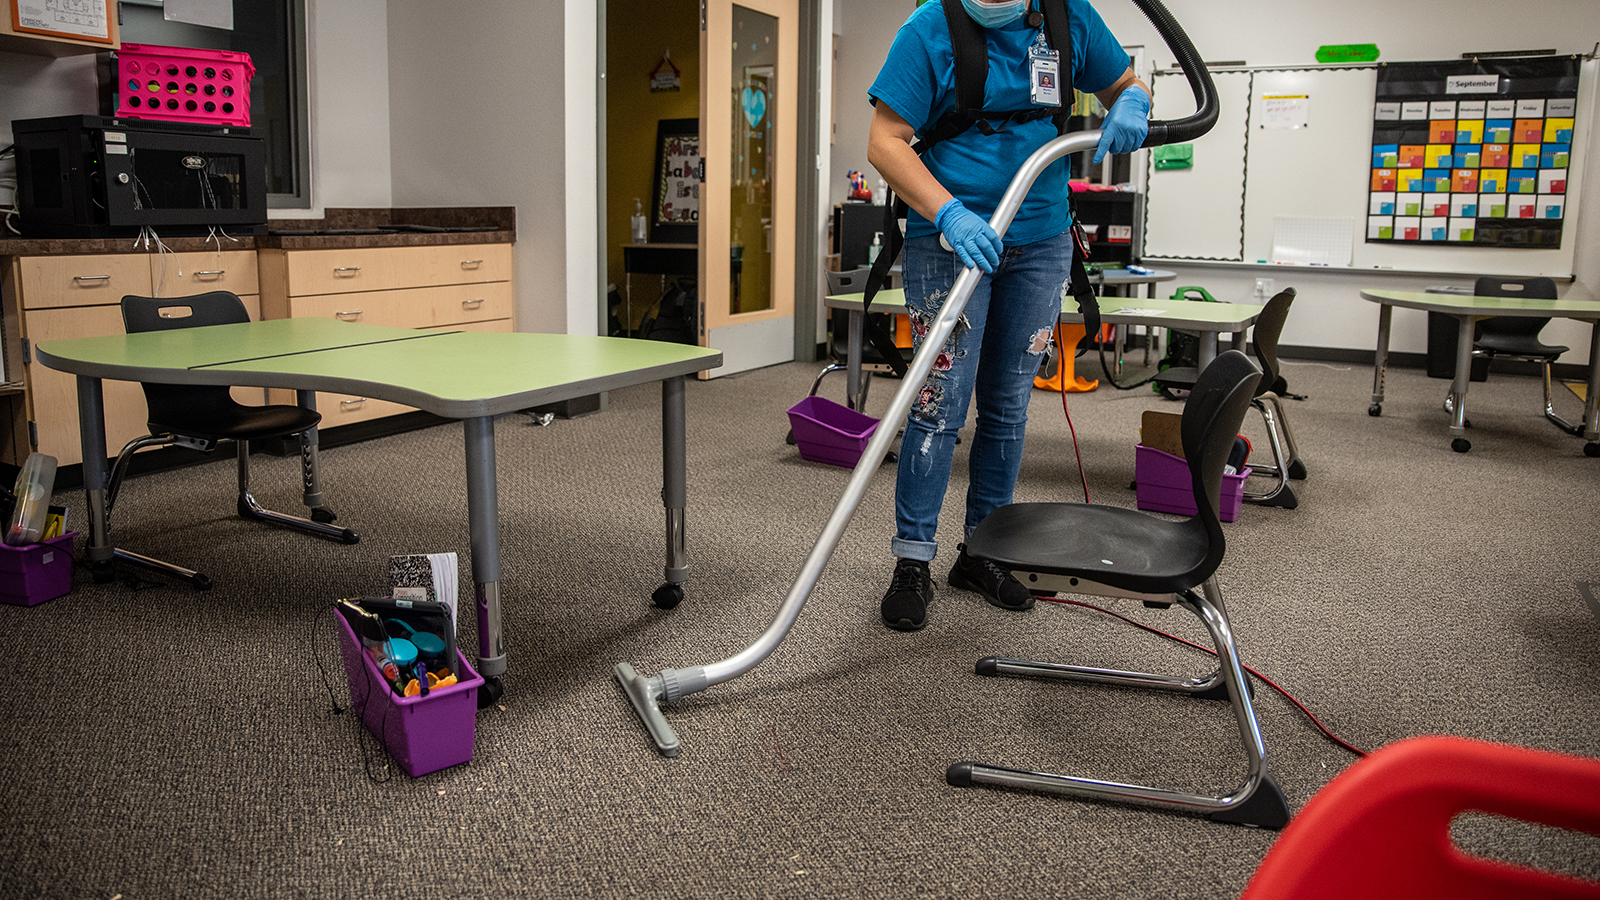 A custodial worker vacuums a classroom at an elementary school in Leander, Texas, on Friday, September 18, 2020.